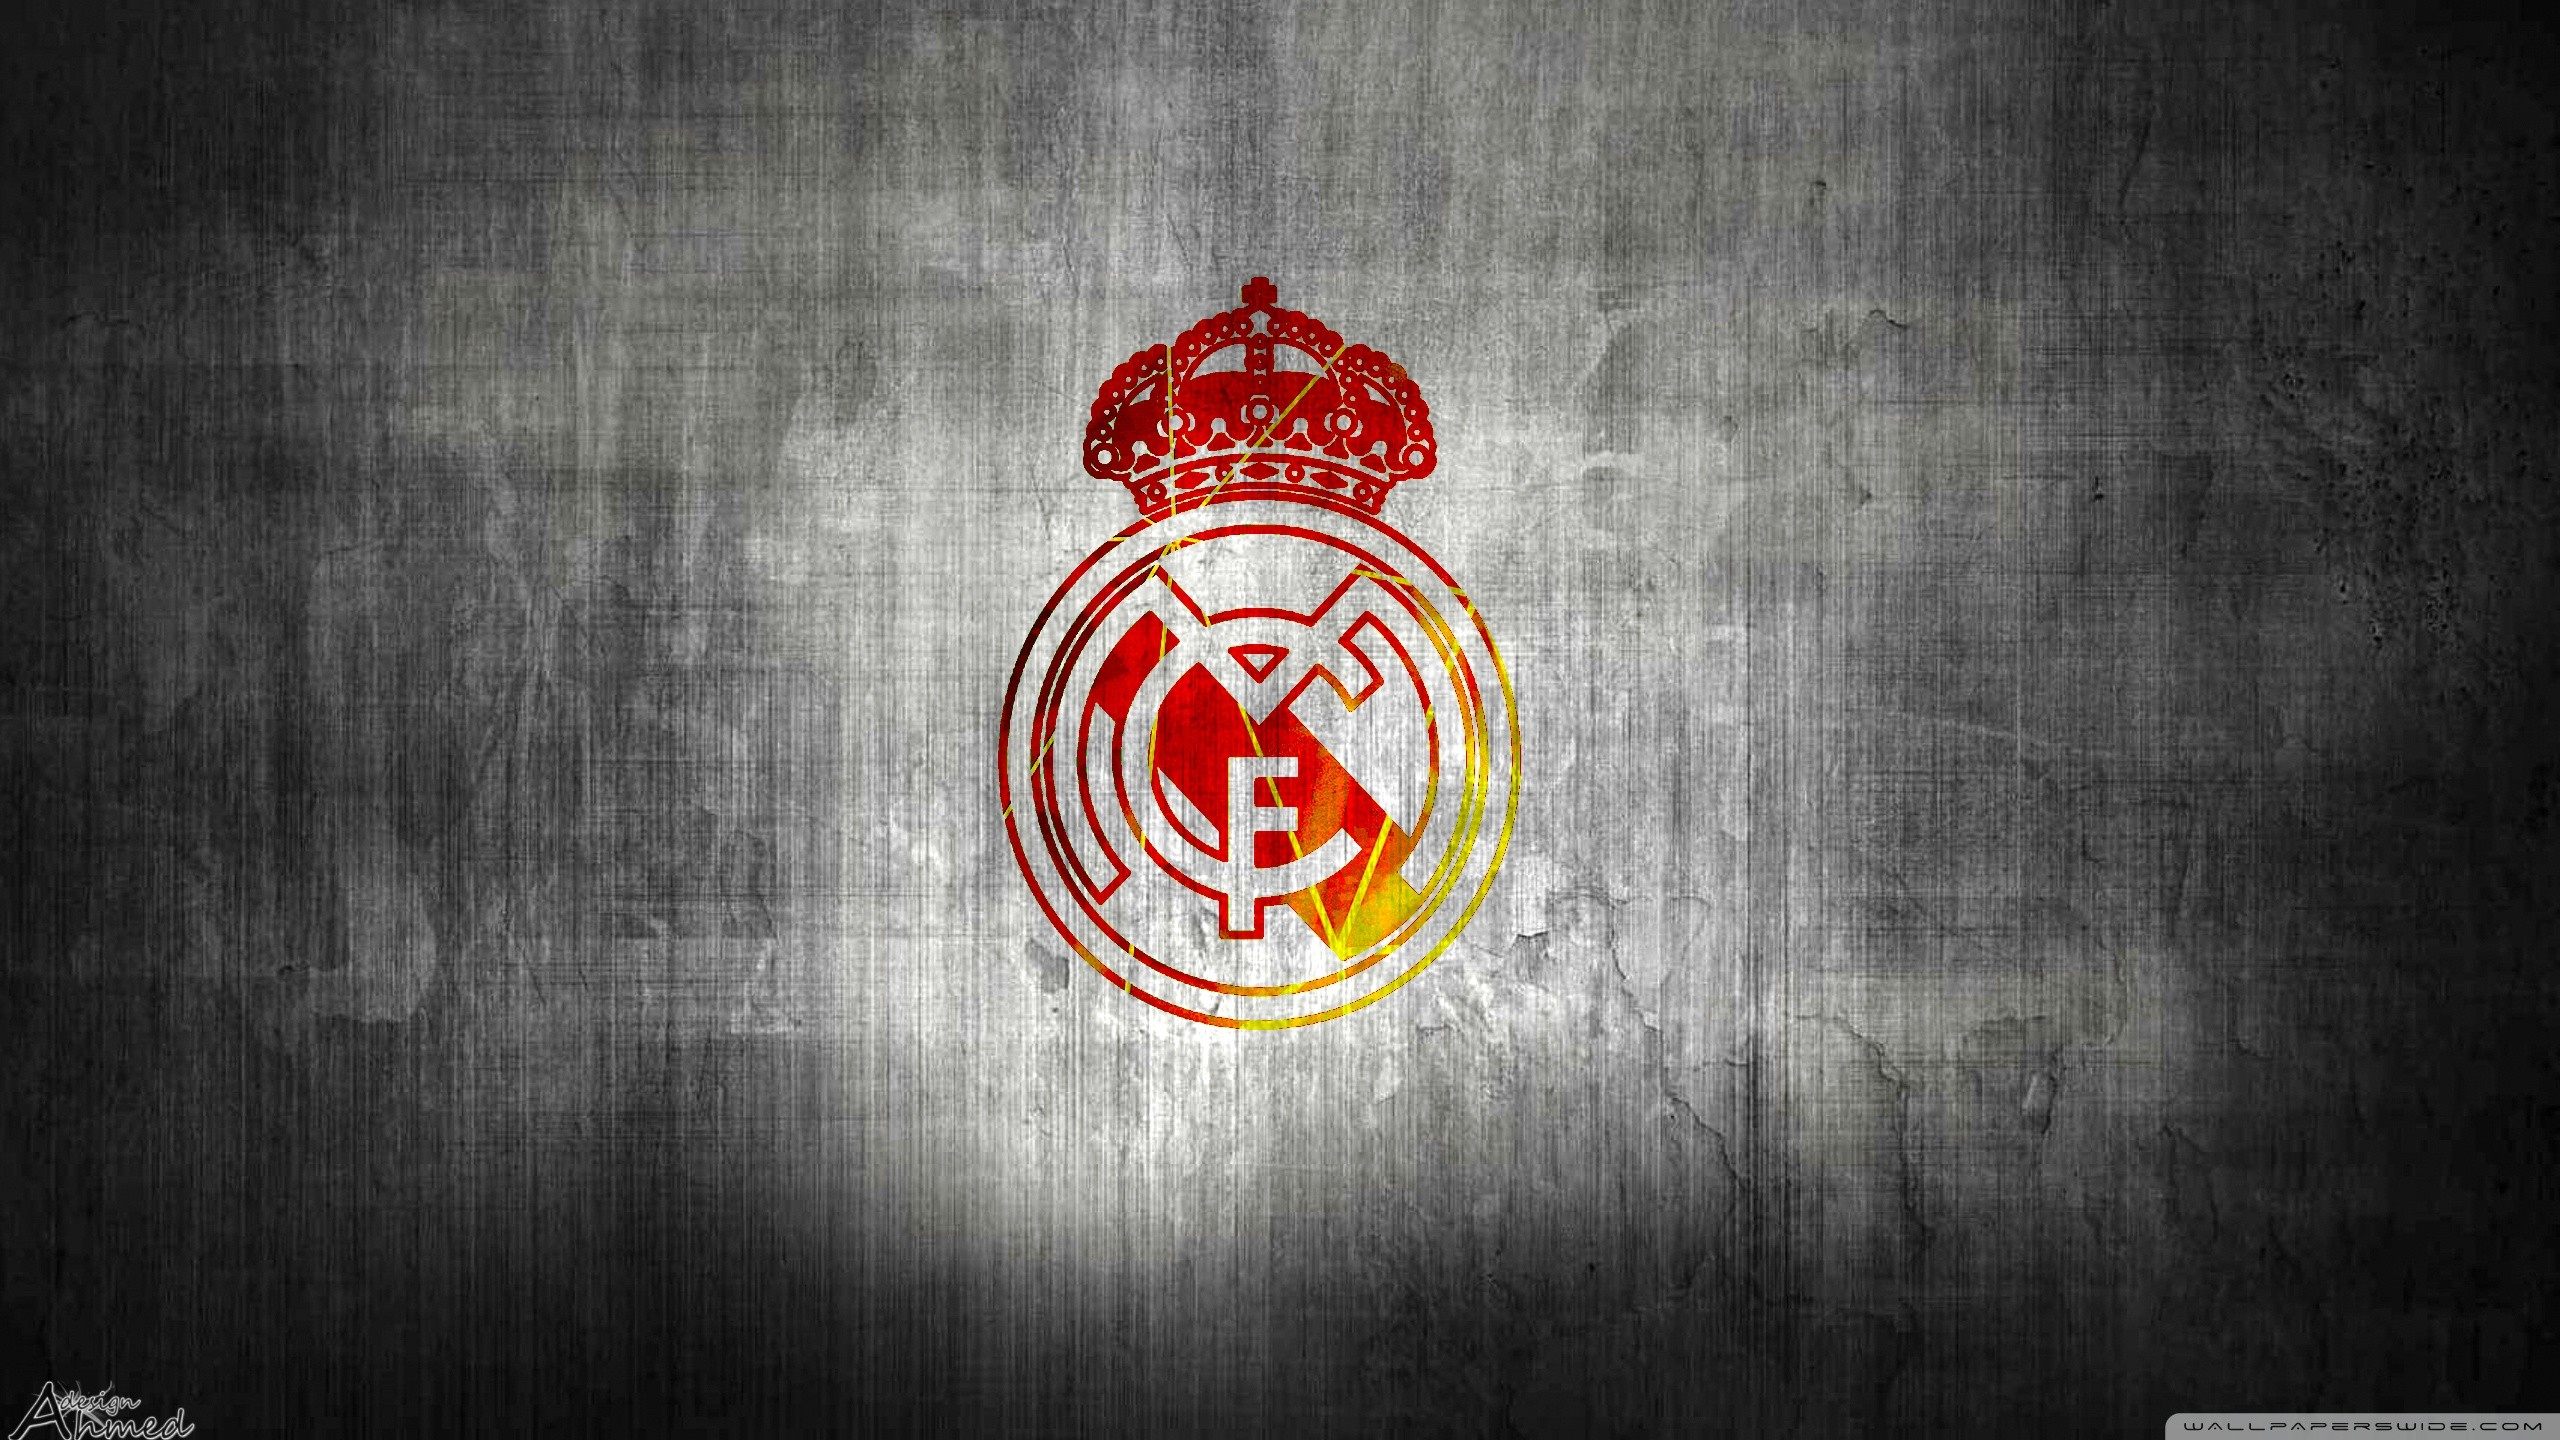 Real Madrid HD Wallpapers 69 images 2560x1440